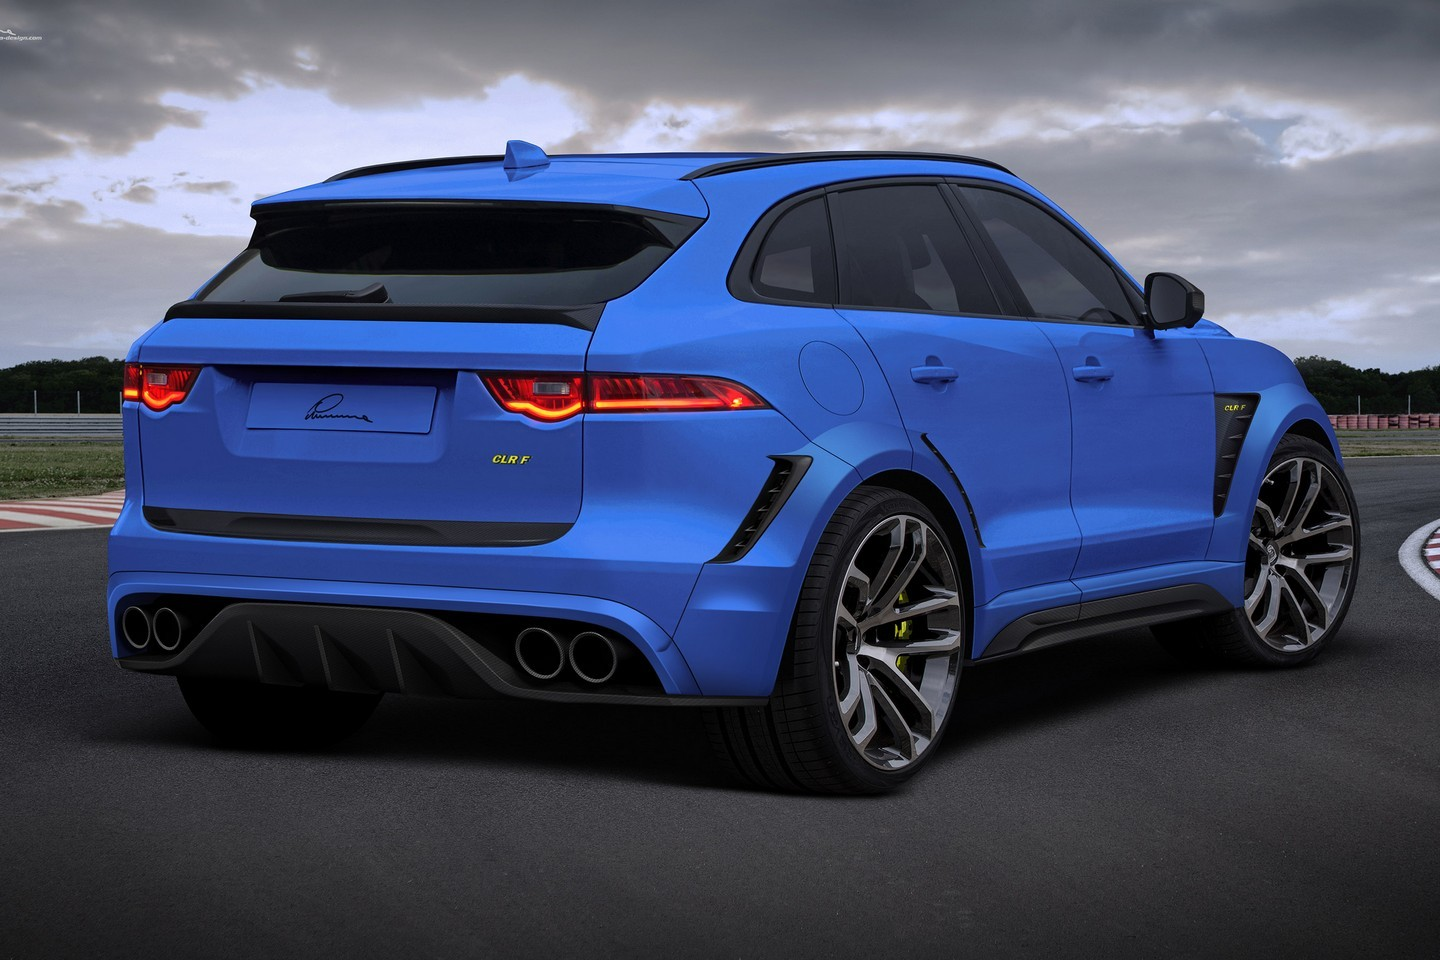 2015 Range Rover Price >> Jaguar F-Pace Gets Widebody Kit and 24-Inch Wheels from Lumma - autoevolution